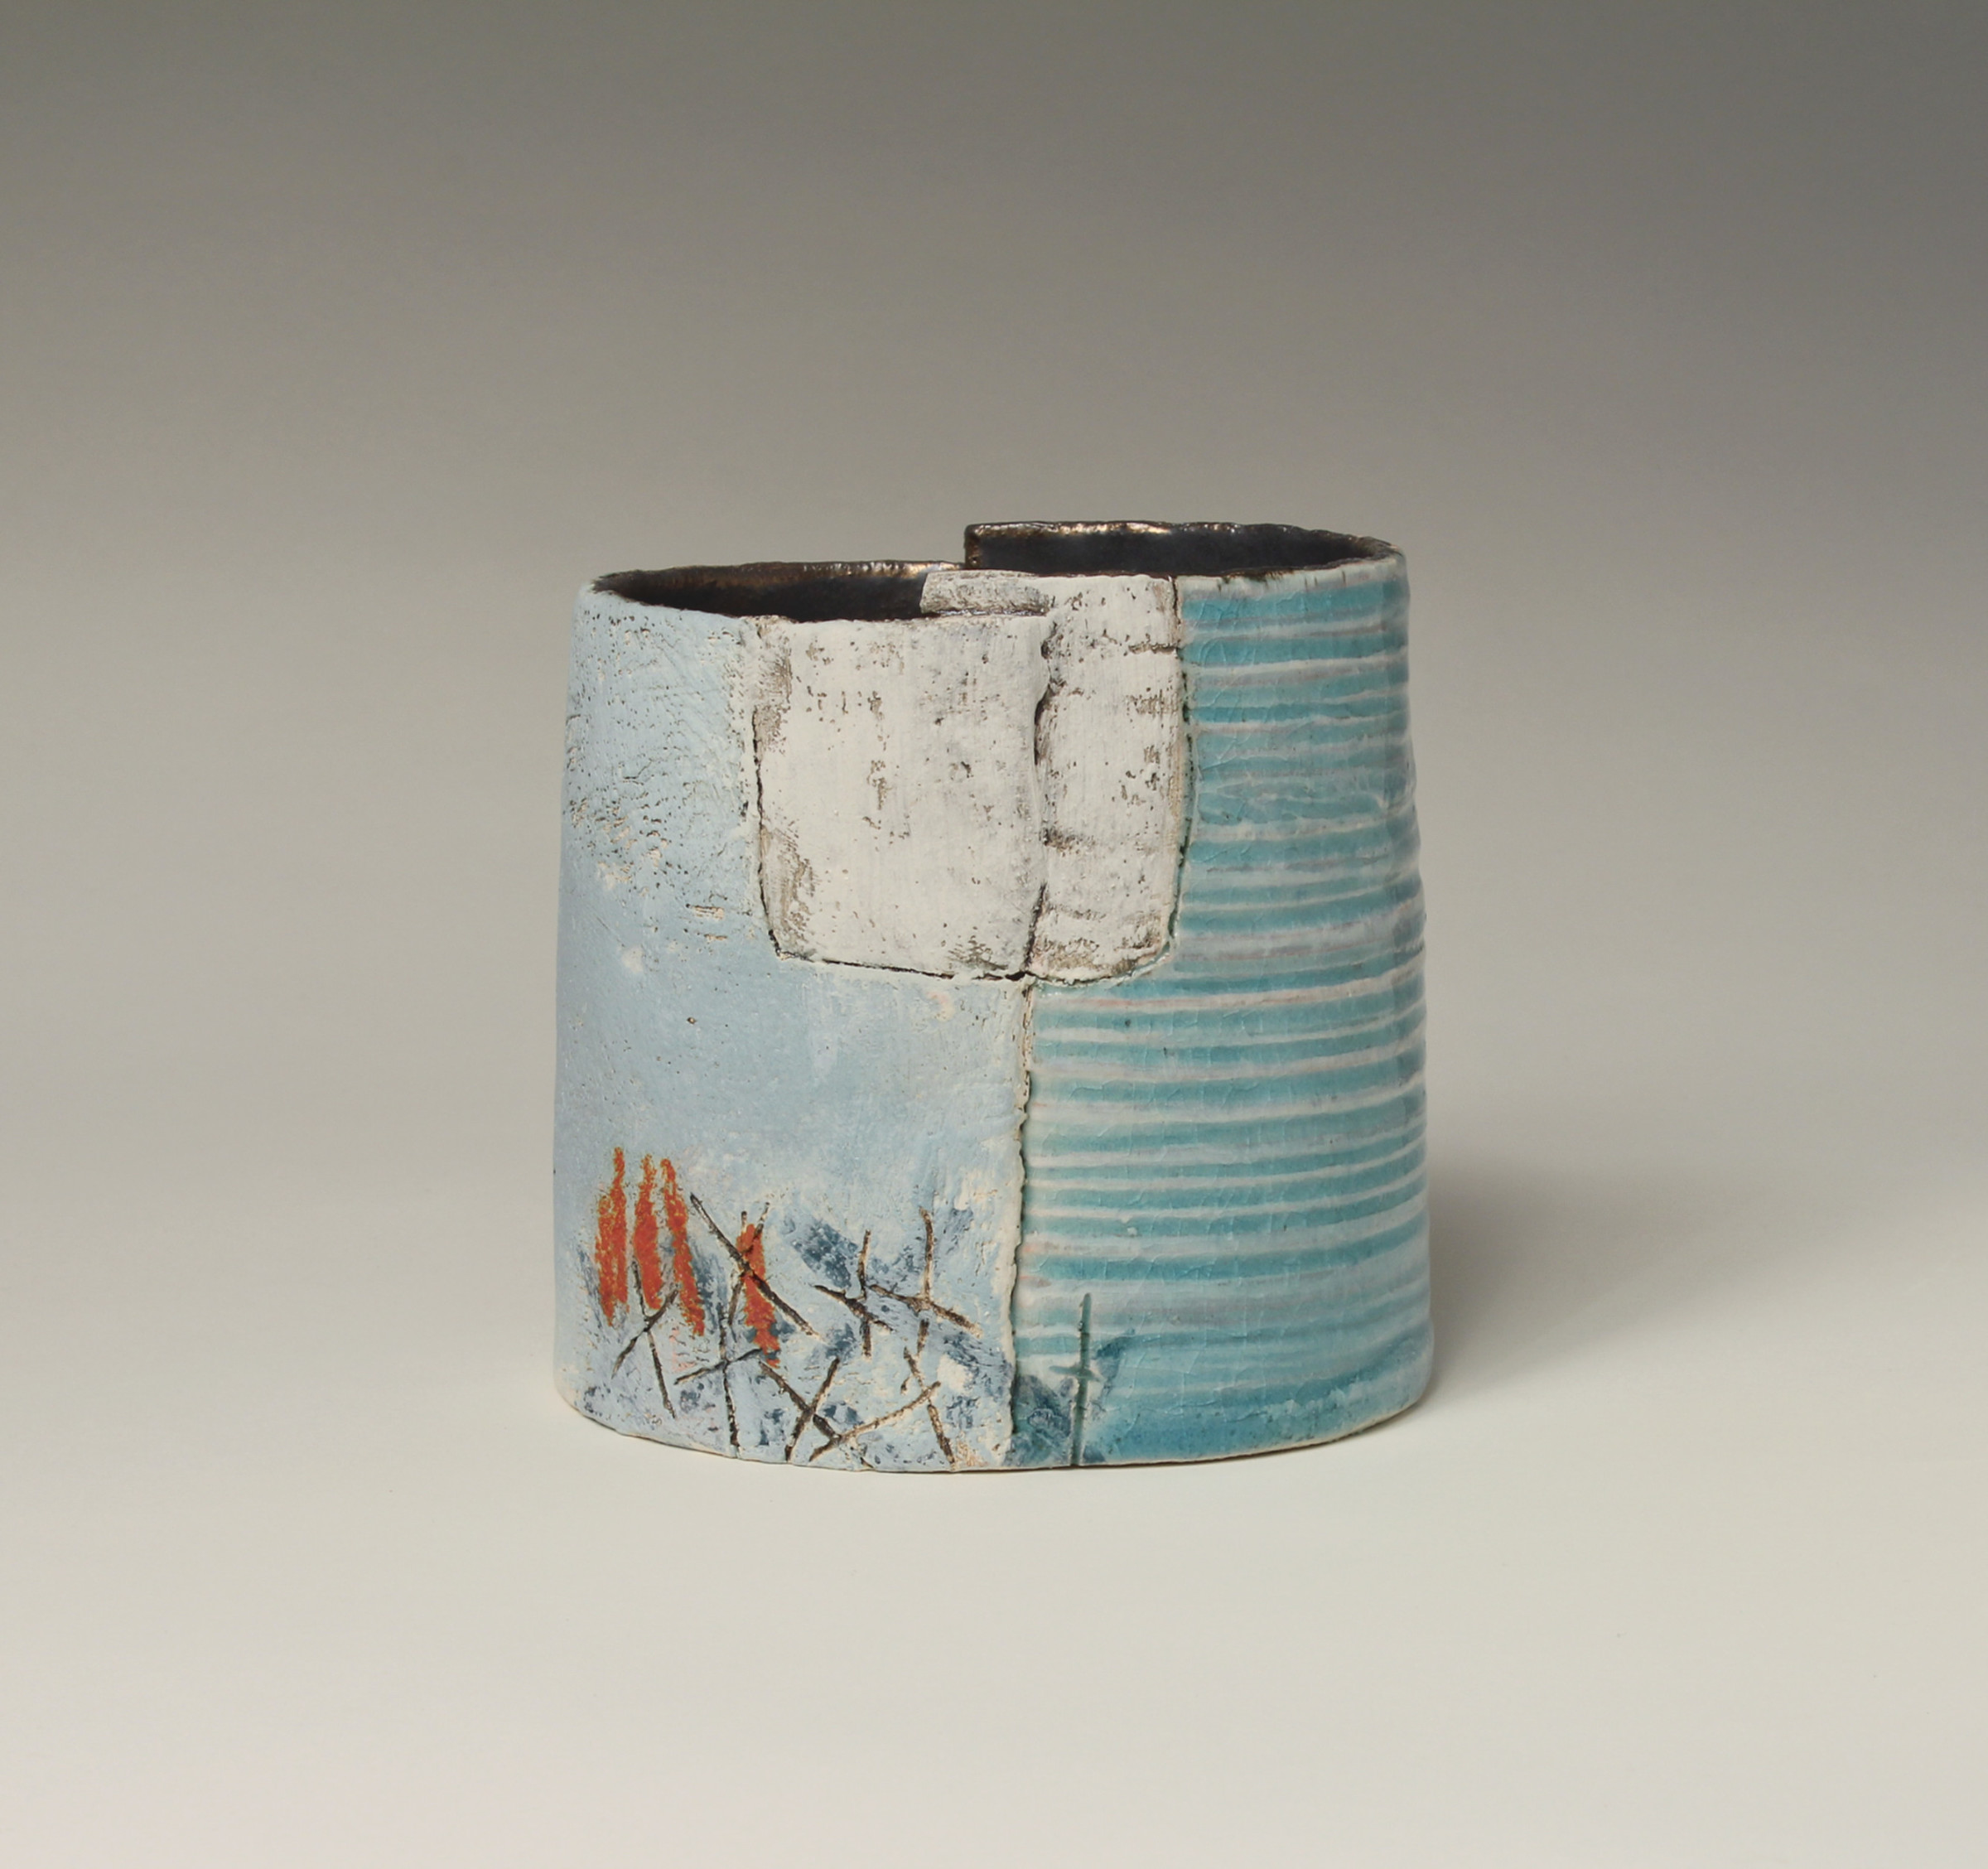 "<span class=""link fancybox-details-link""><a href=""/artists/72-craig-underhill/works/5624-craig-underhill-small-vessel-water-2018/"">View Detail Page</a></span><div class=""artist""><strong>Craig Underhill</strong></div> <div class=""title""><em>Small Vessel - Water</em>, 2018</div> <div class=""medium"">slab-built, engobe layers, slips & glazes</div><div class=""copyright_line"">£ 16 x 10 Months, OwnArt 0% APR</div>"